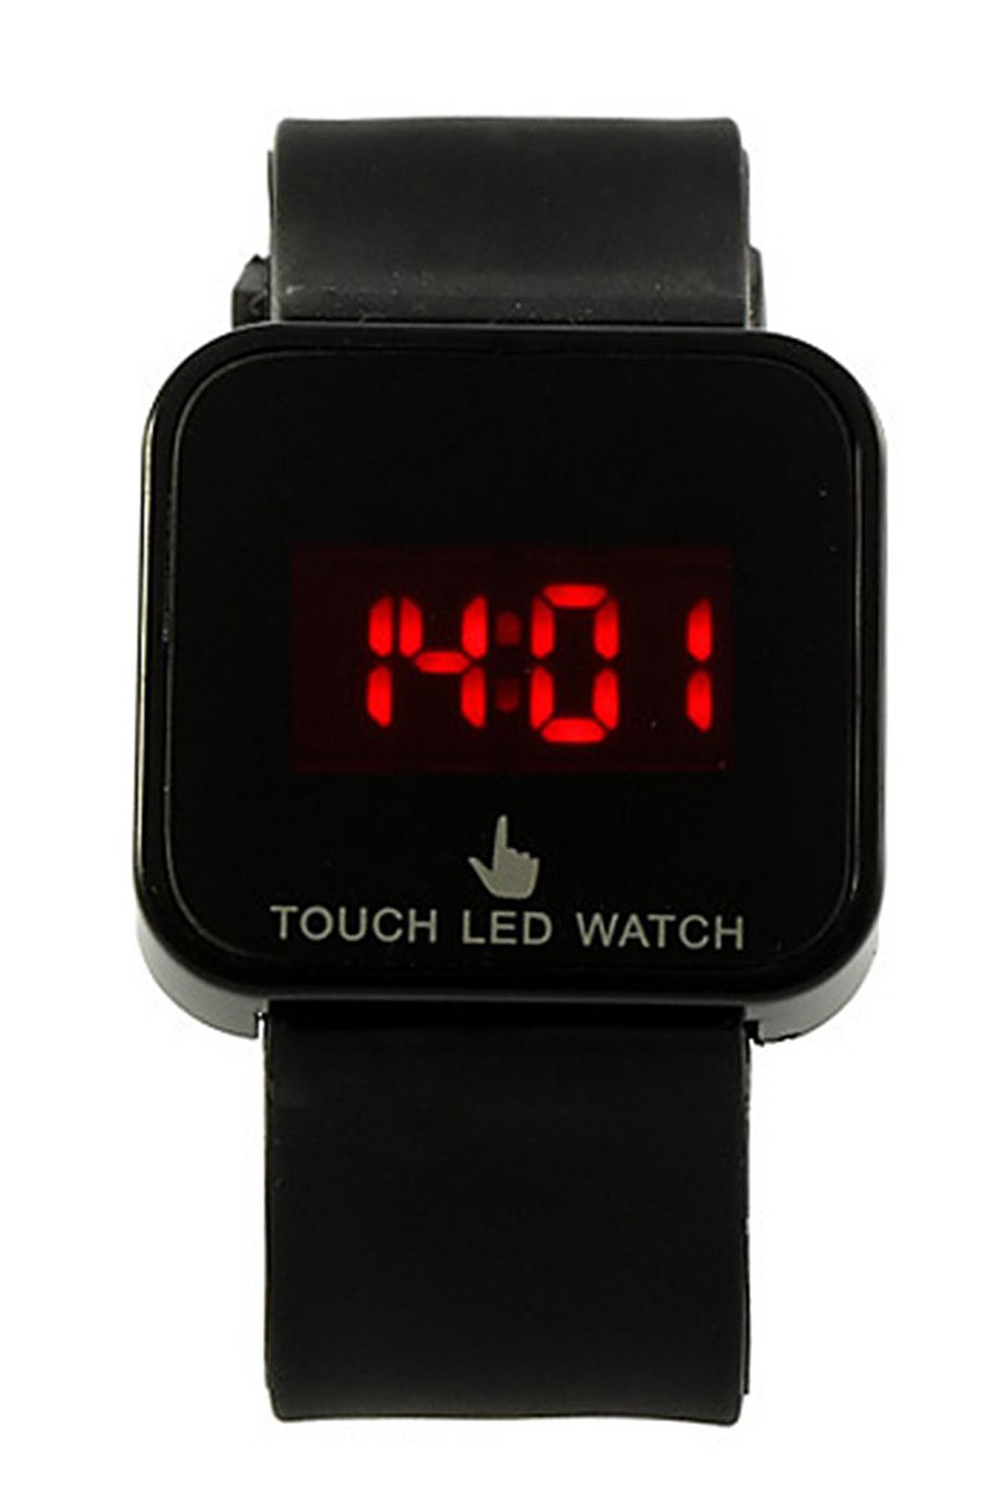 YCYS!Colorful Unisex LED Digital Touch Screen Silicone Wrist Watch Black